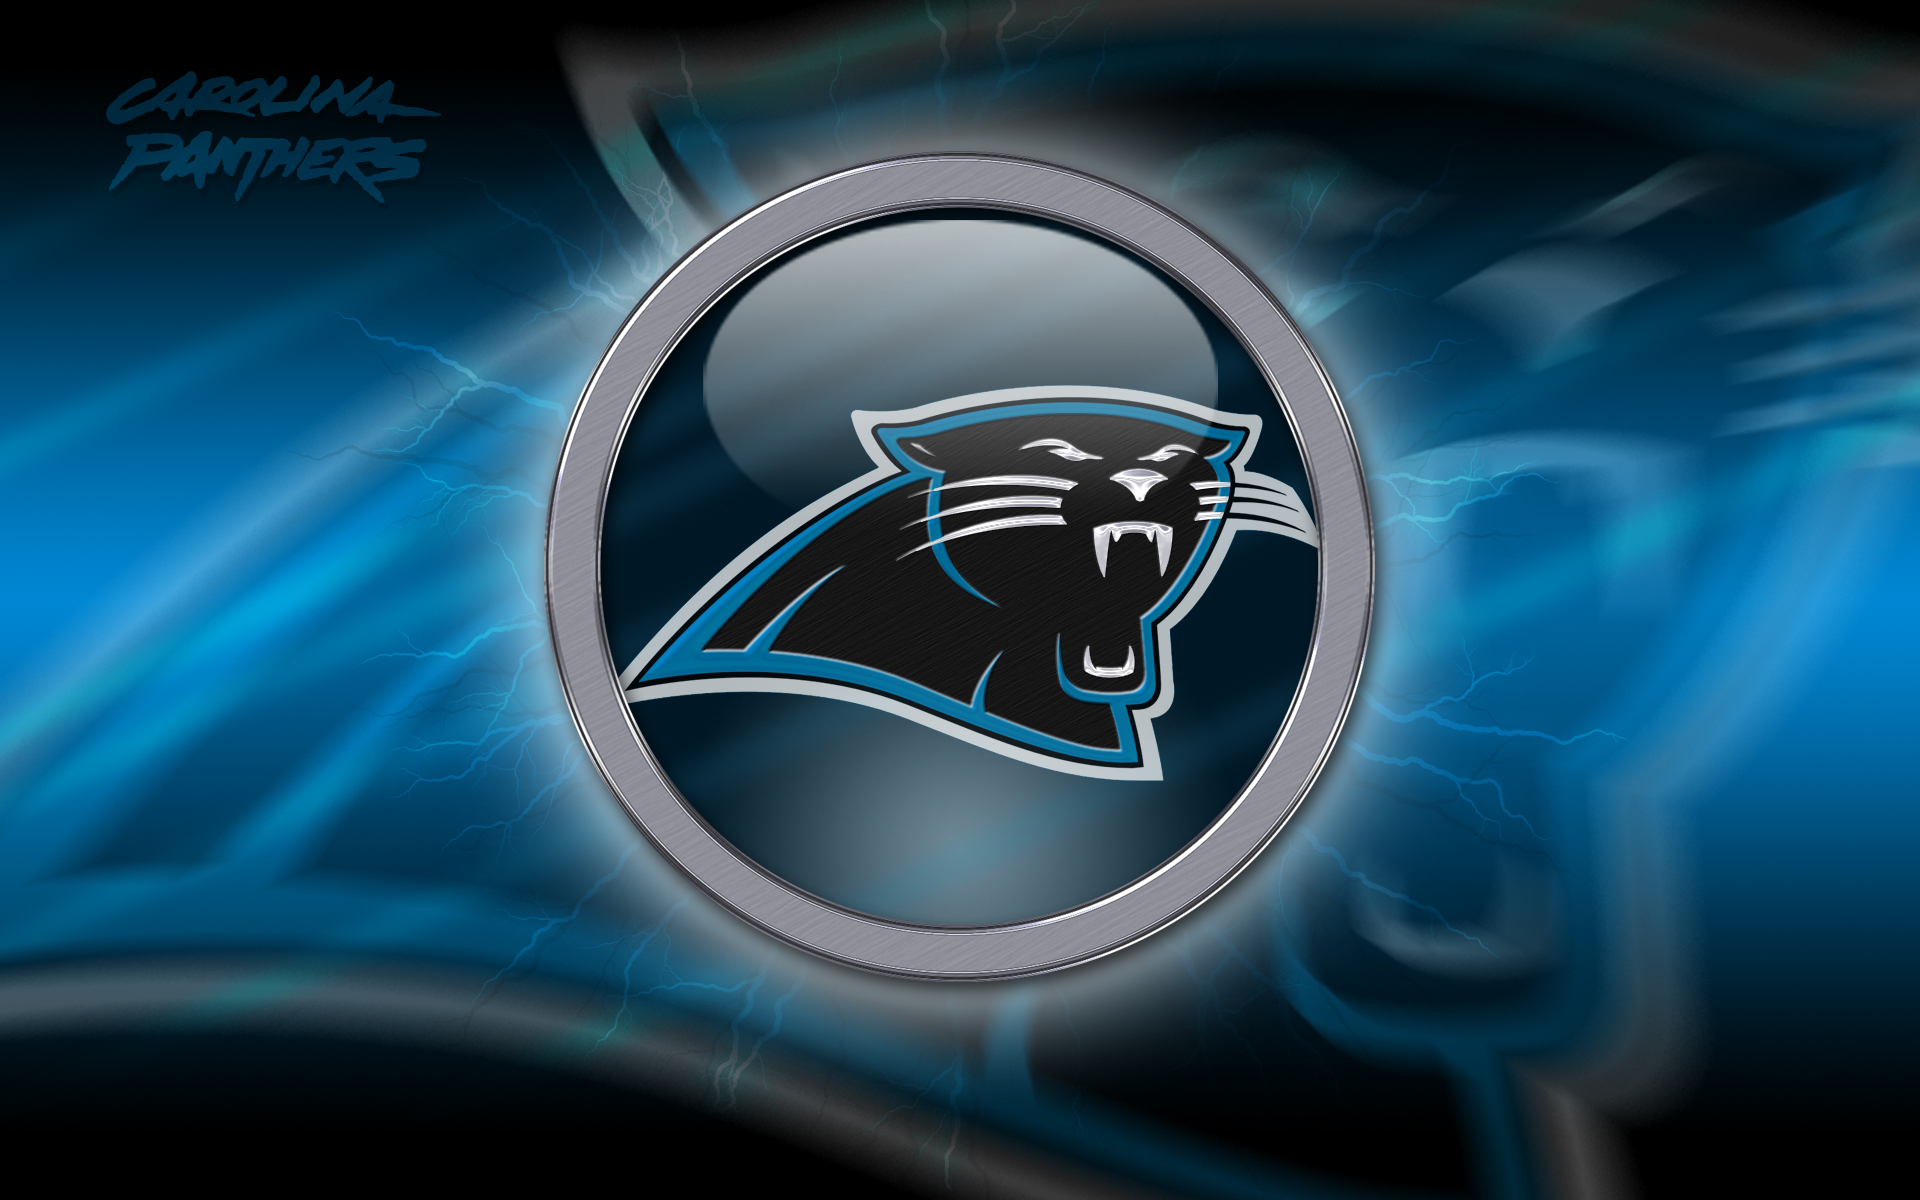 Carolina Panthers Iphone Wallpaper Wallpapersafari